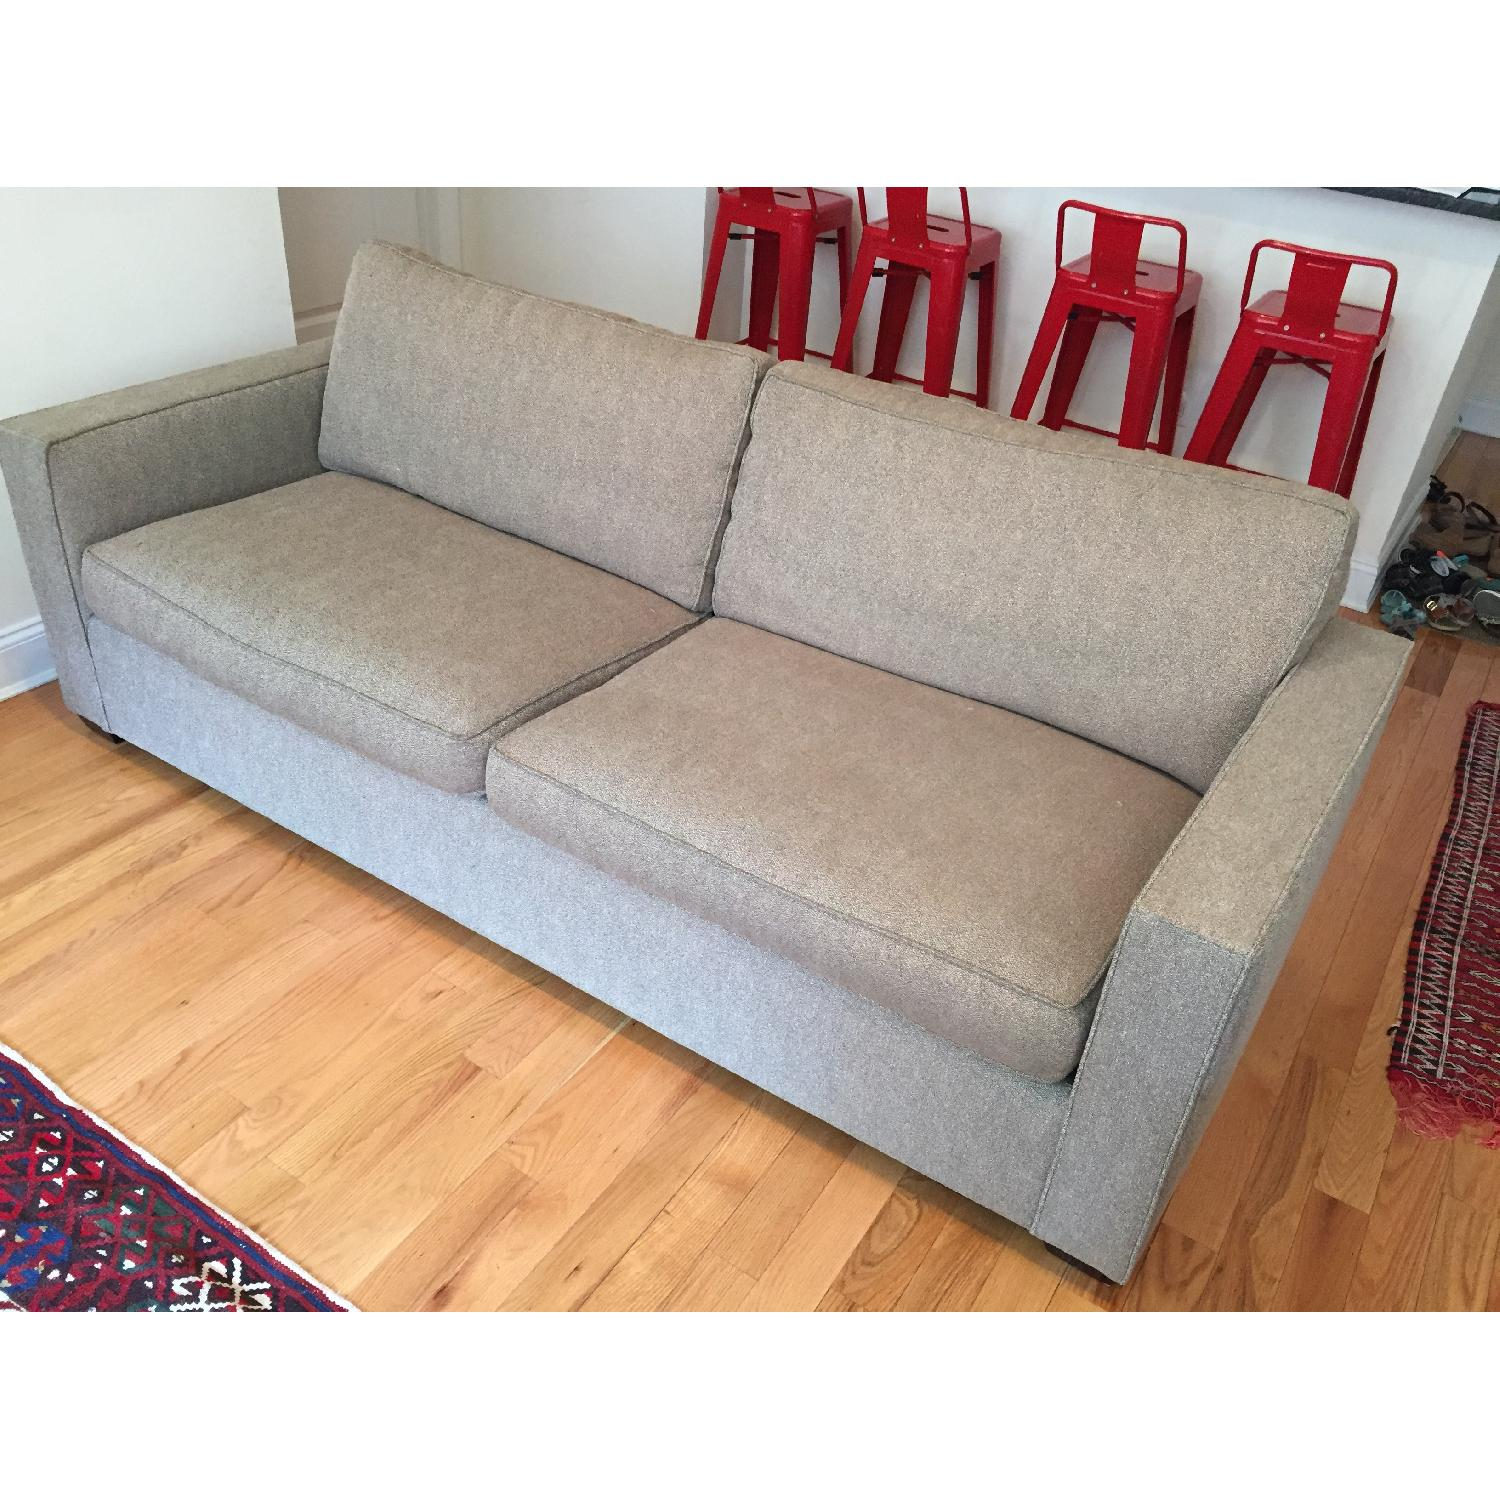 Room & Board 2 Seater Couch - image-4